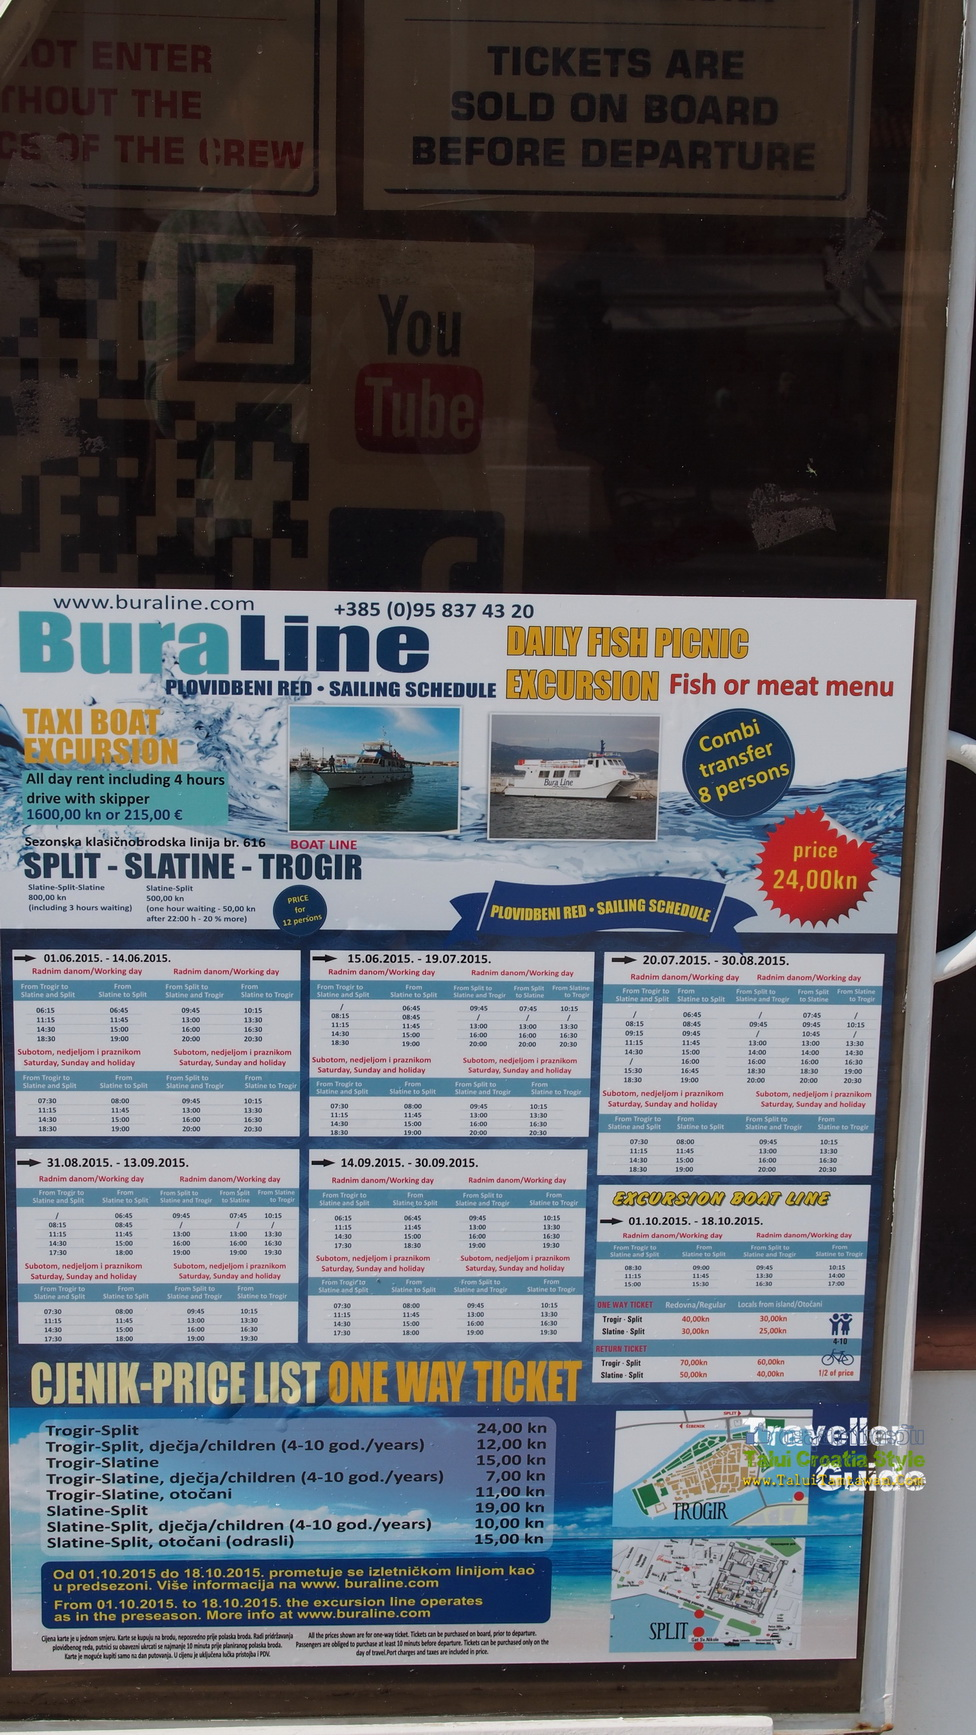 BuraLine Taxi boat One way Ticket : Split - Trogir 24kn